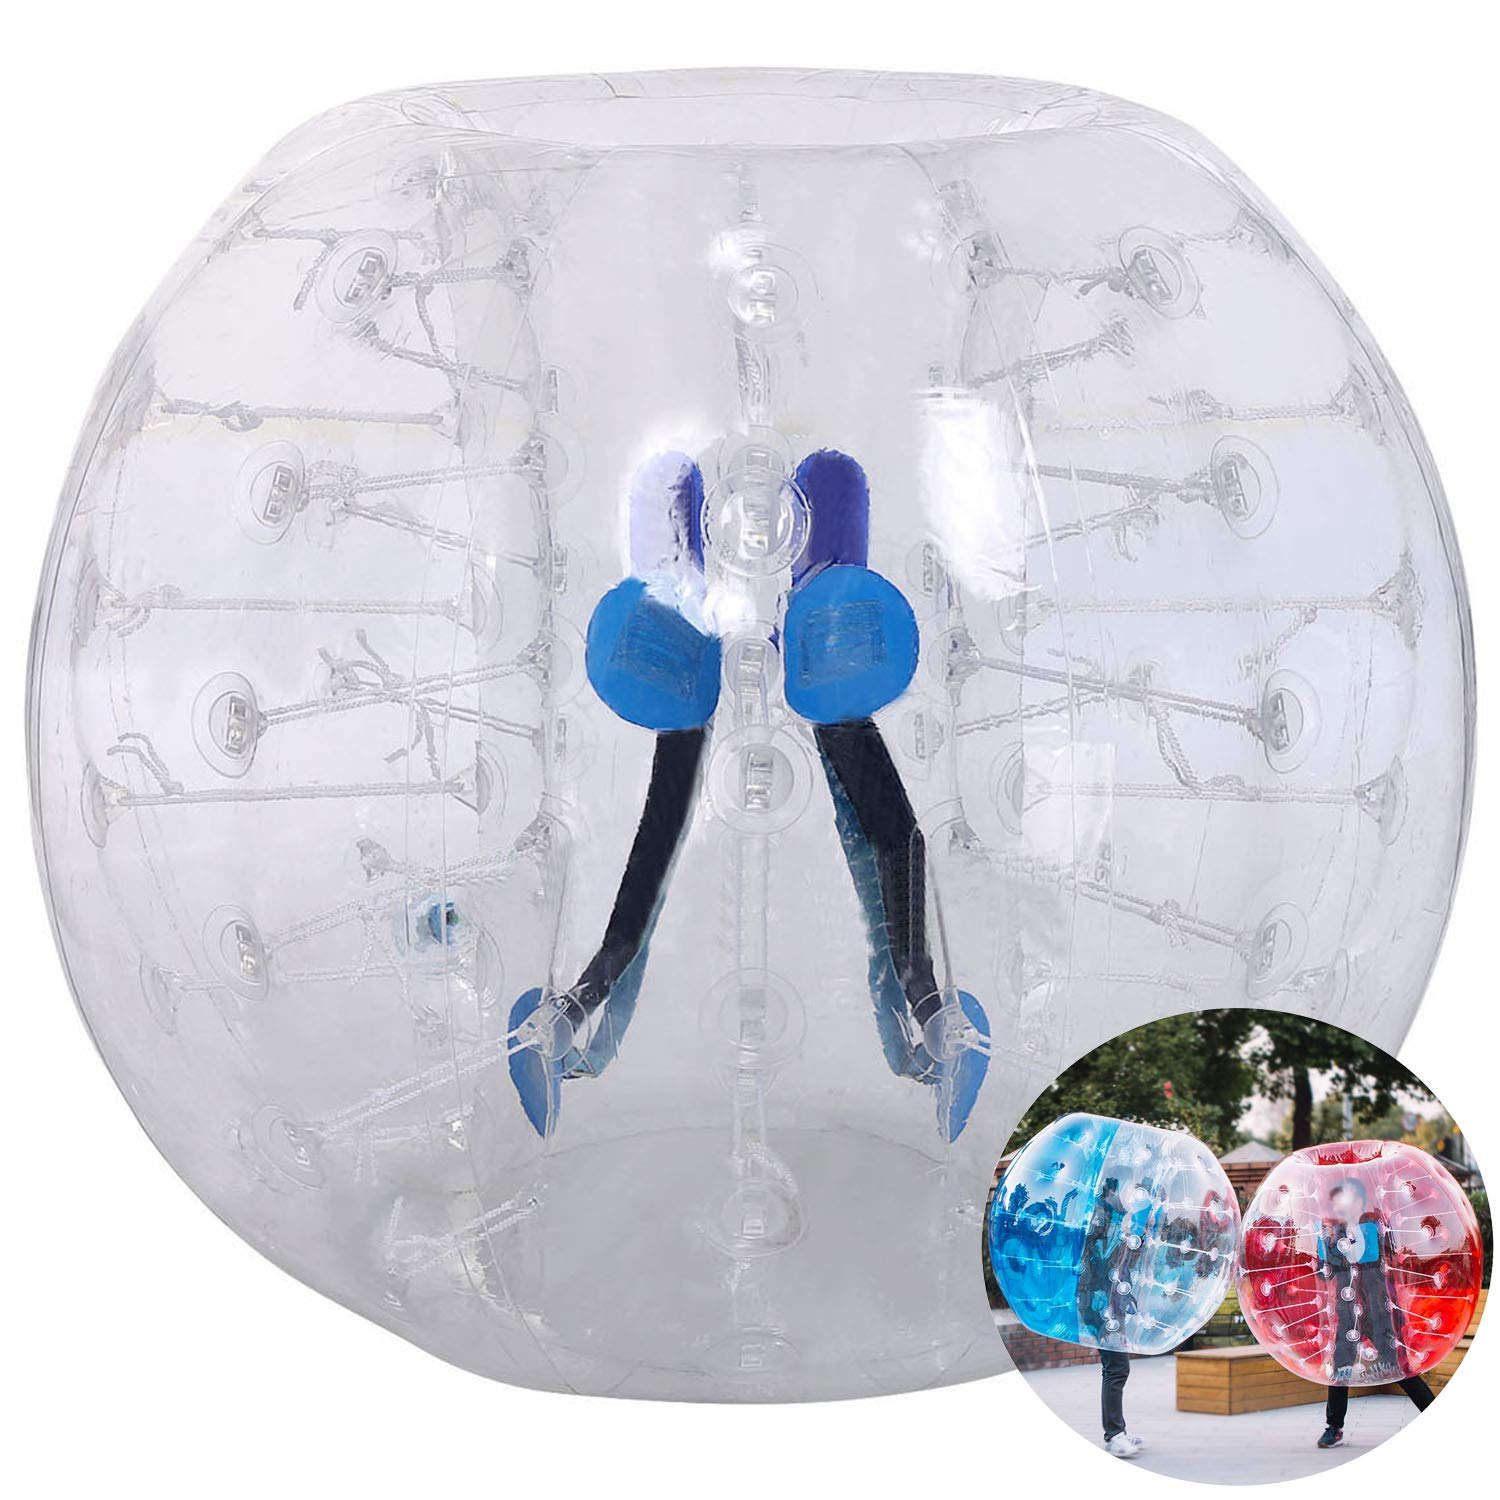 Inflatable Bumper Bubble Soccer Ball, Giant Human Hamster Ball Knocker Ball for Adults & Teens, Body Bumper Dia 4ft/5 ft(1.2m/1.5m) with Repair kit[US Stock] (White(1.2M))